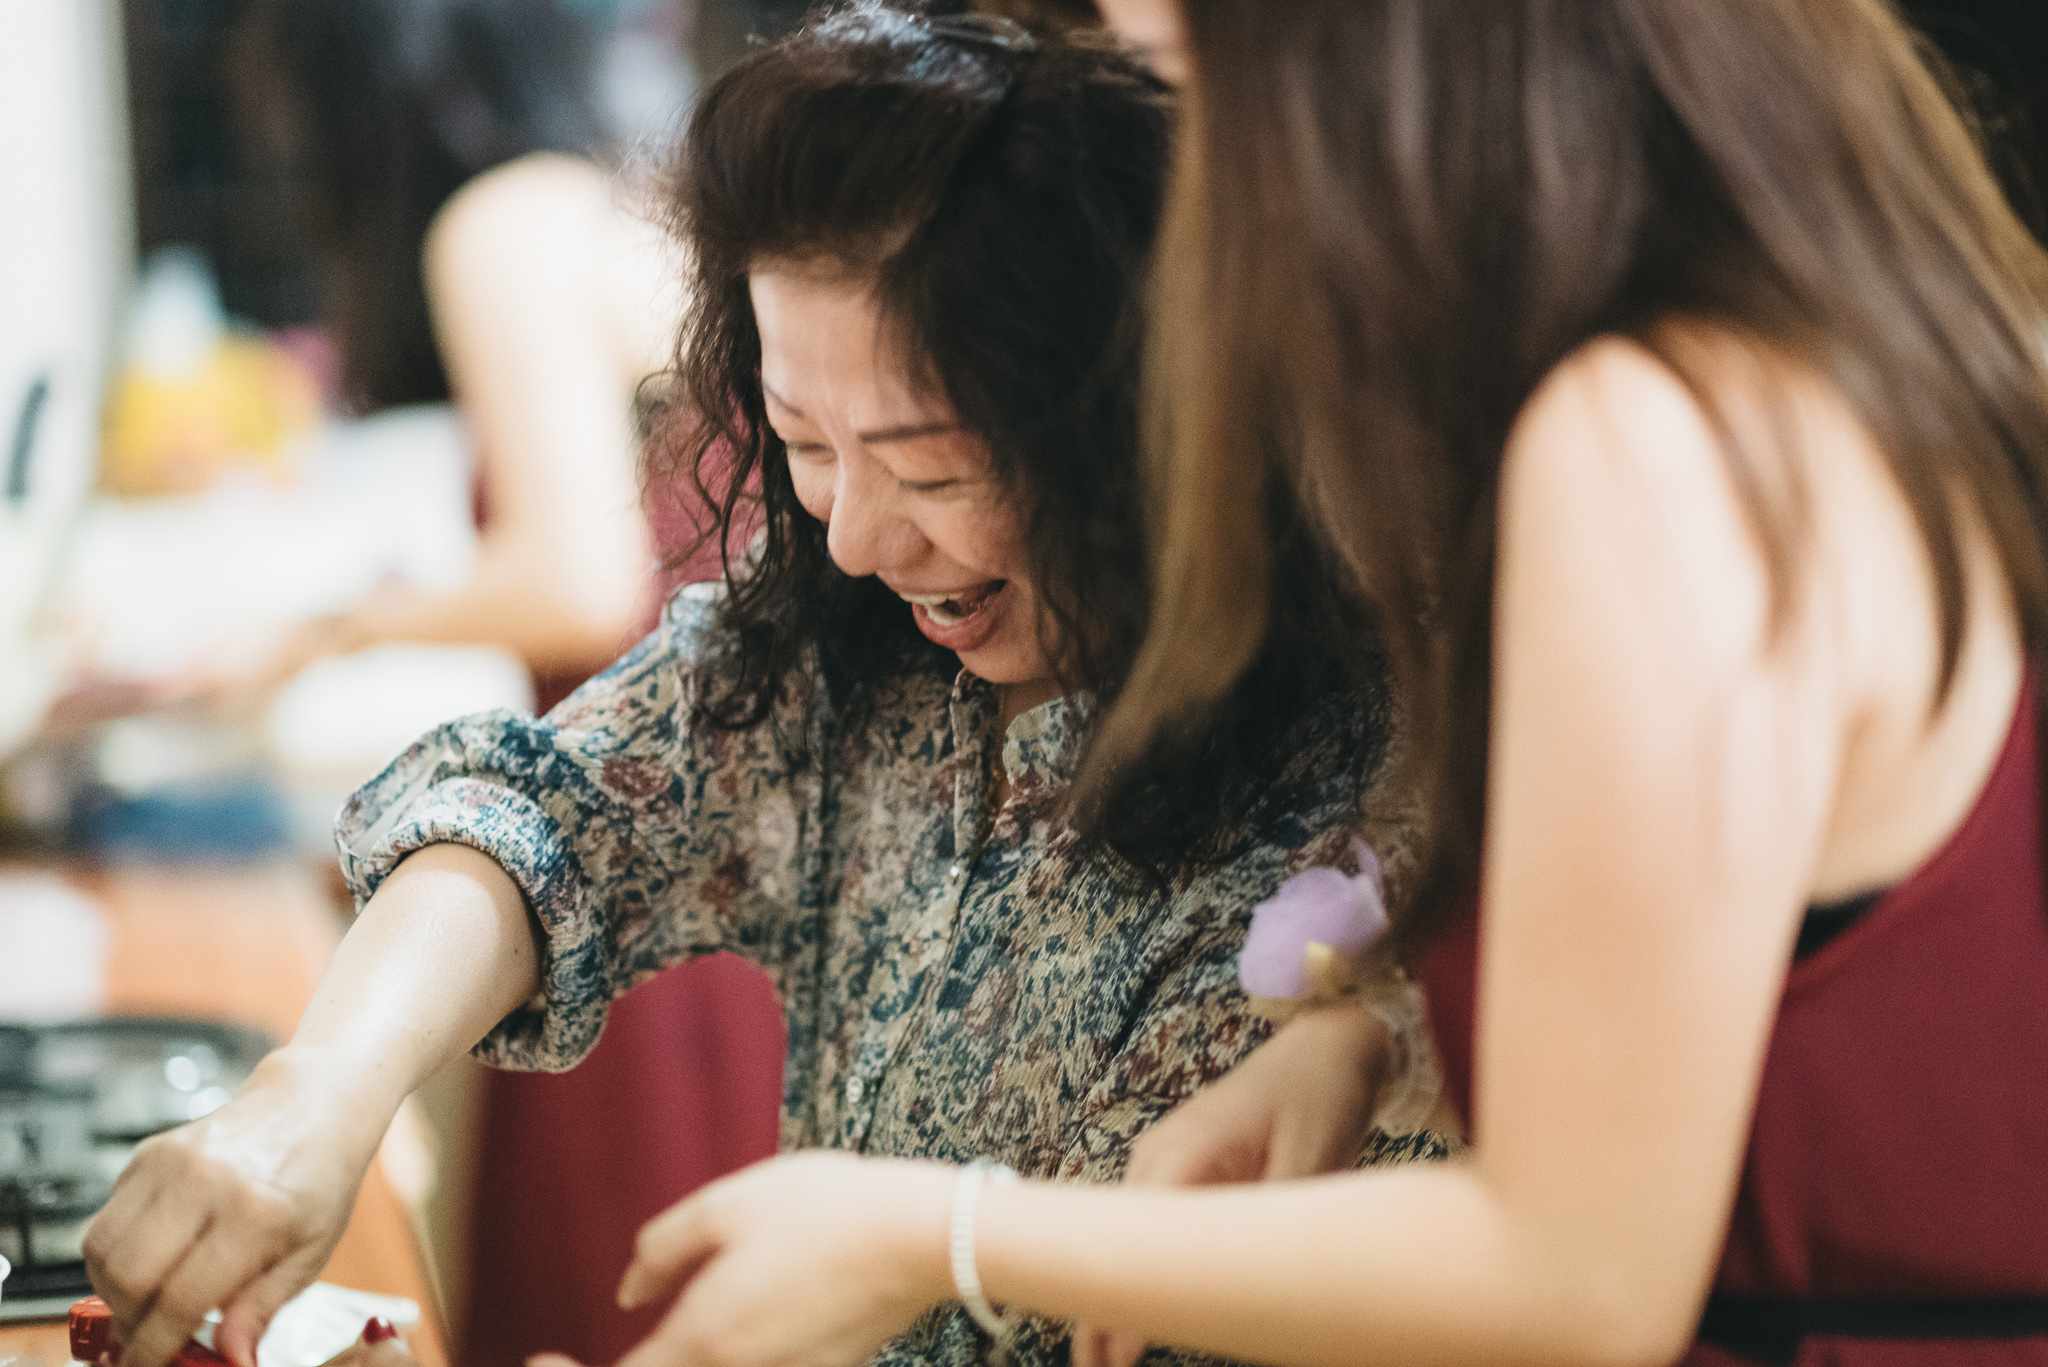 Fiona & Terence Wedding Day Highlights (resized for sharing) - 002.jpg